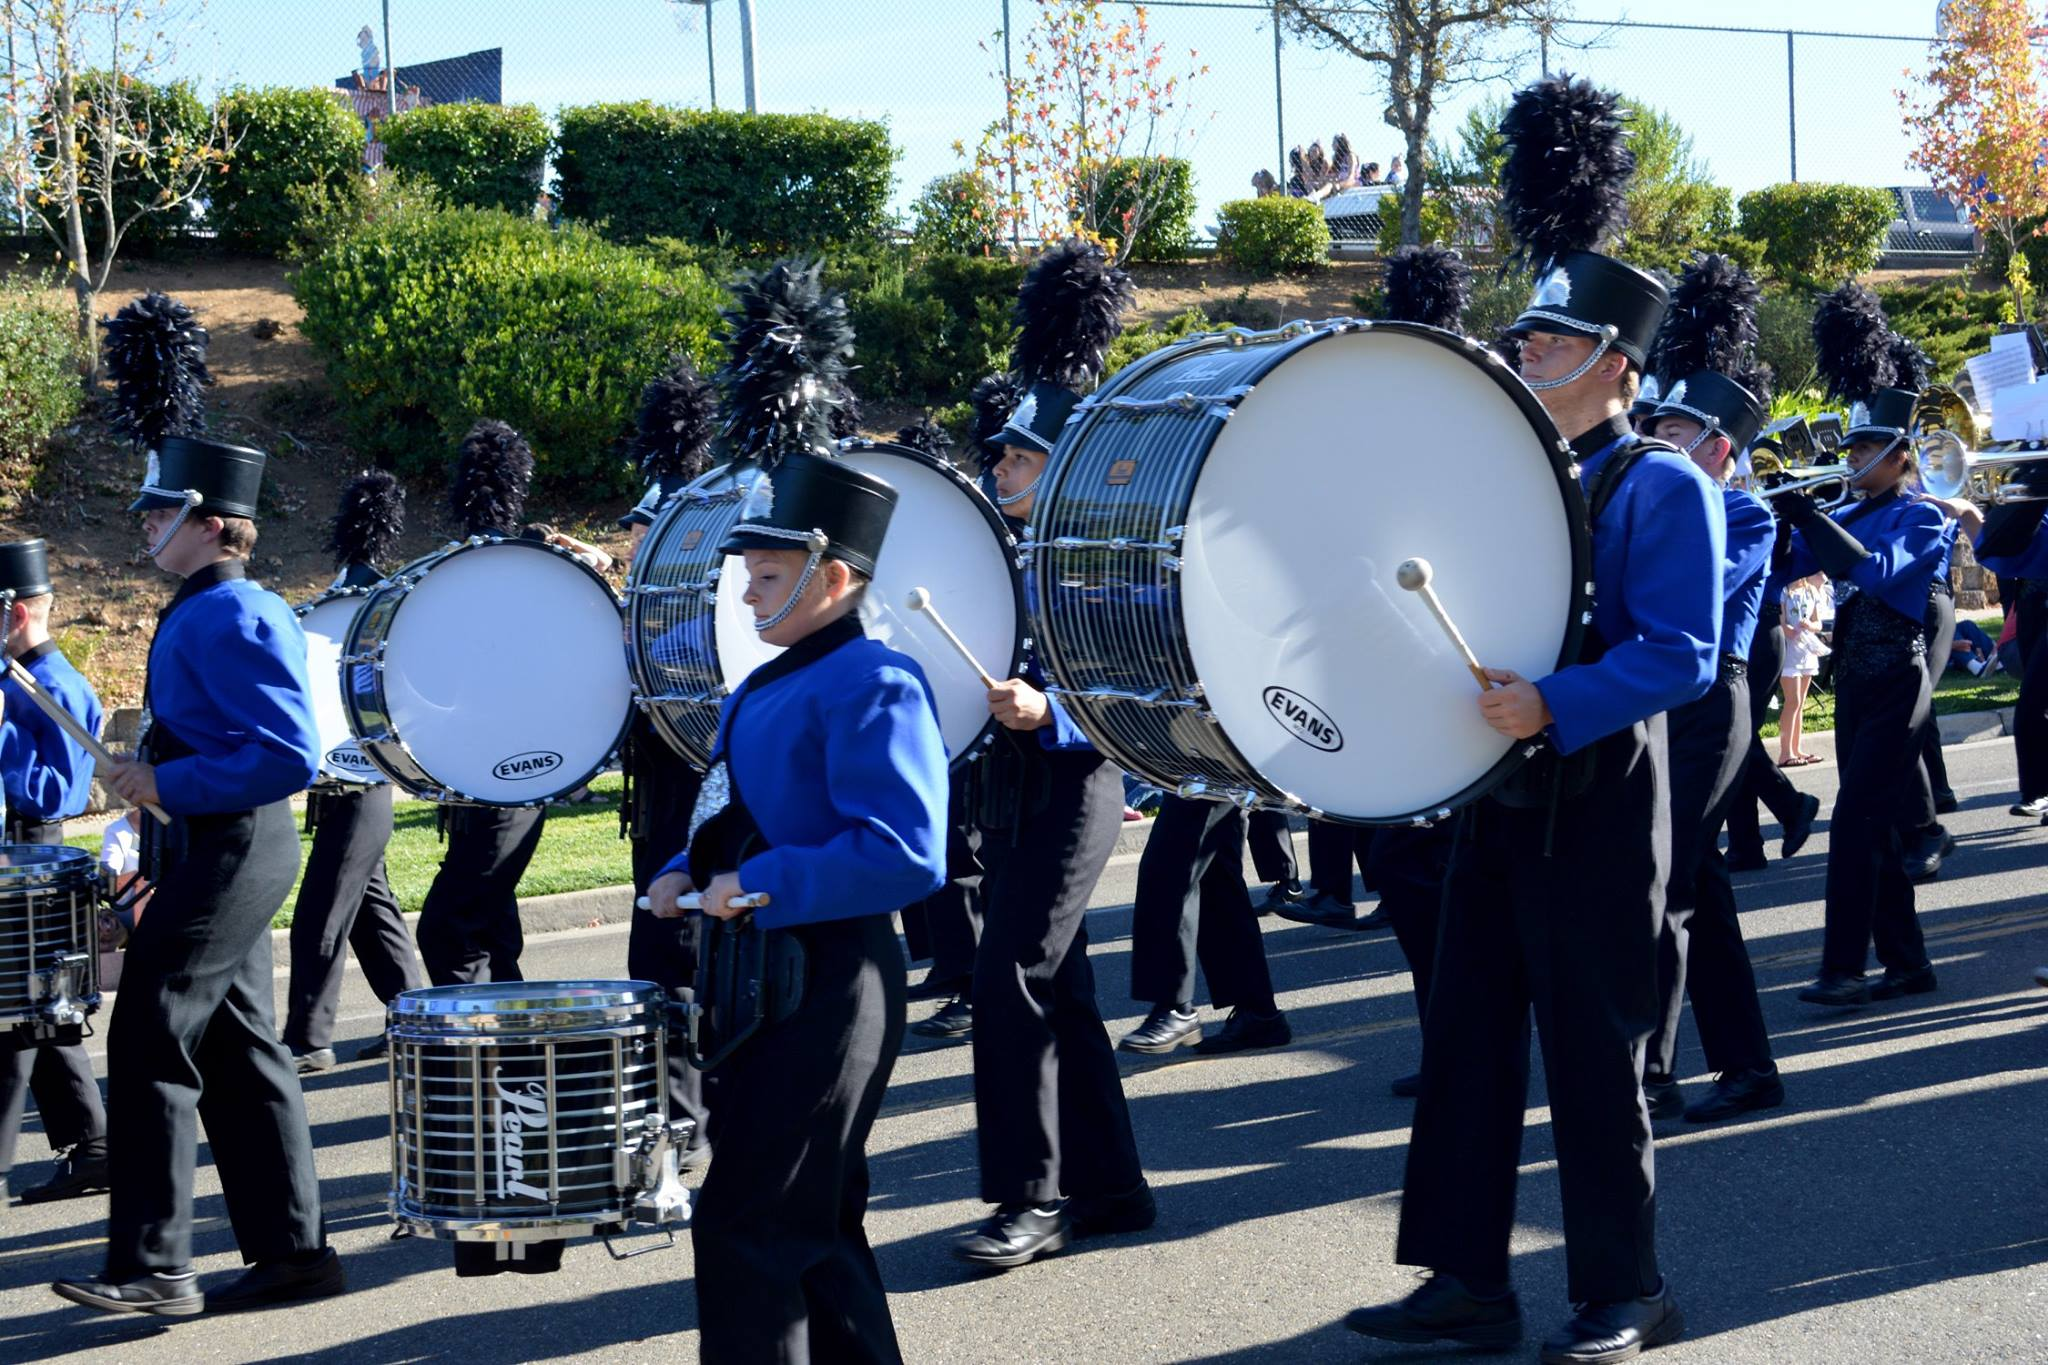 MB homecoming parade 2016.jake and drums.jpg